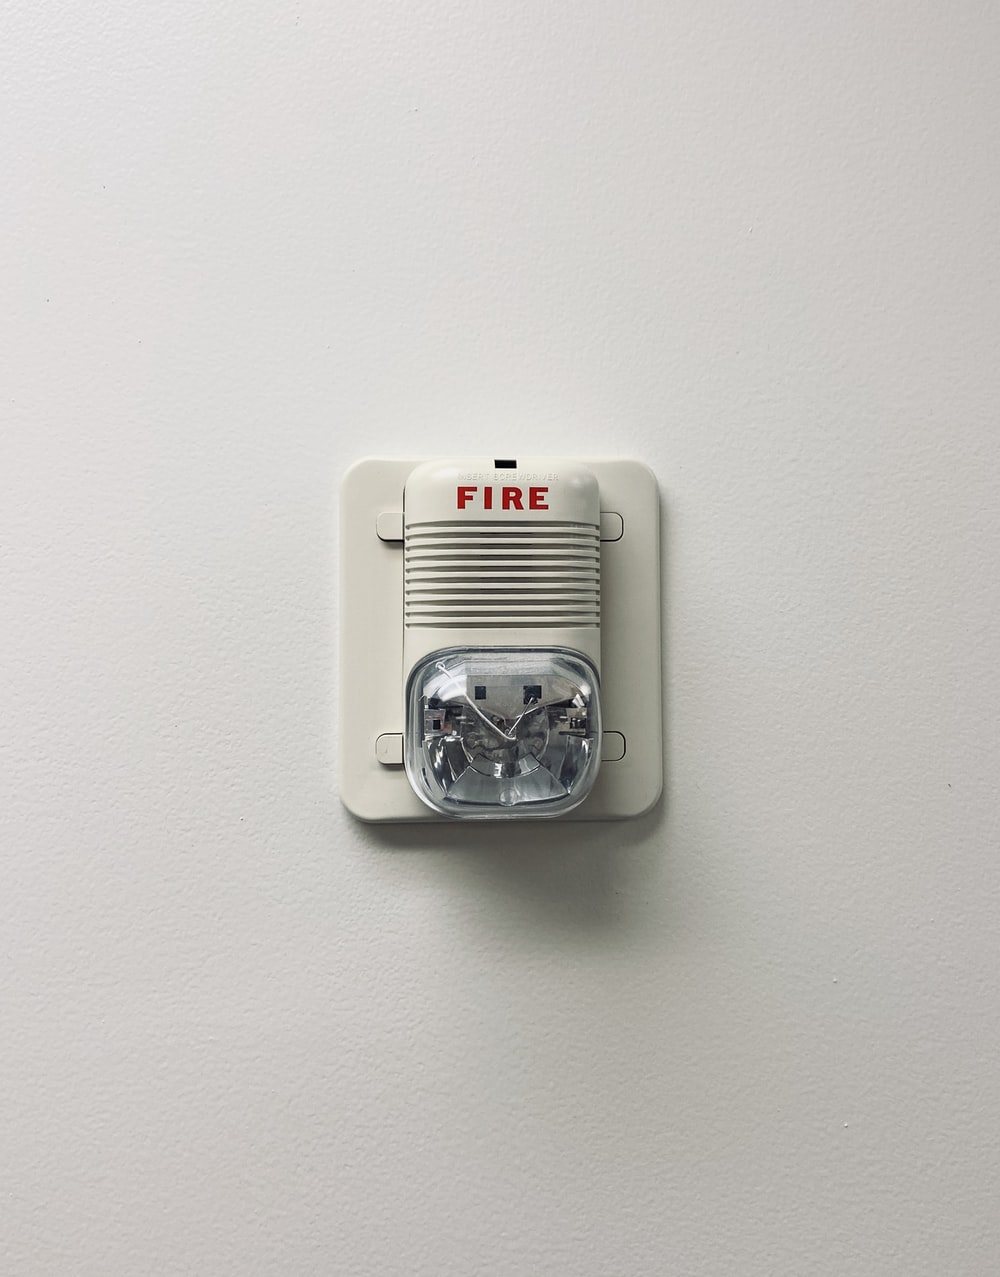 white and black electric device mounted on white wall